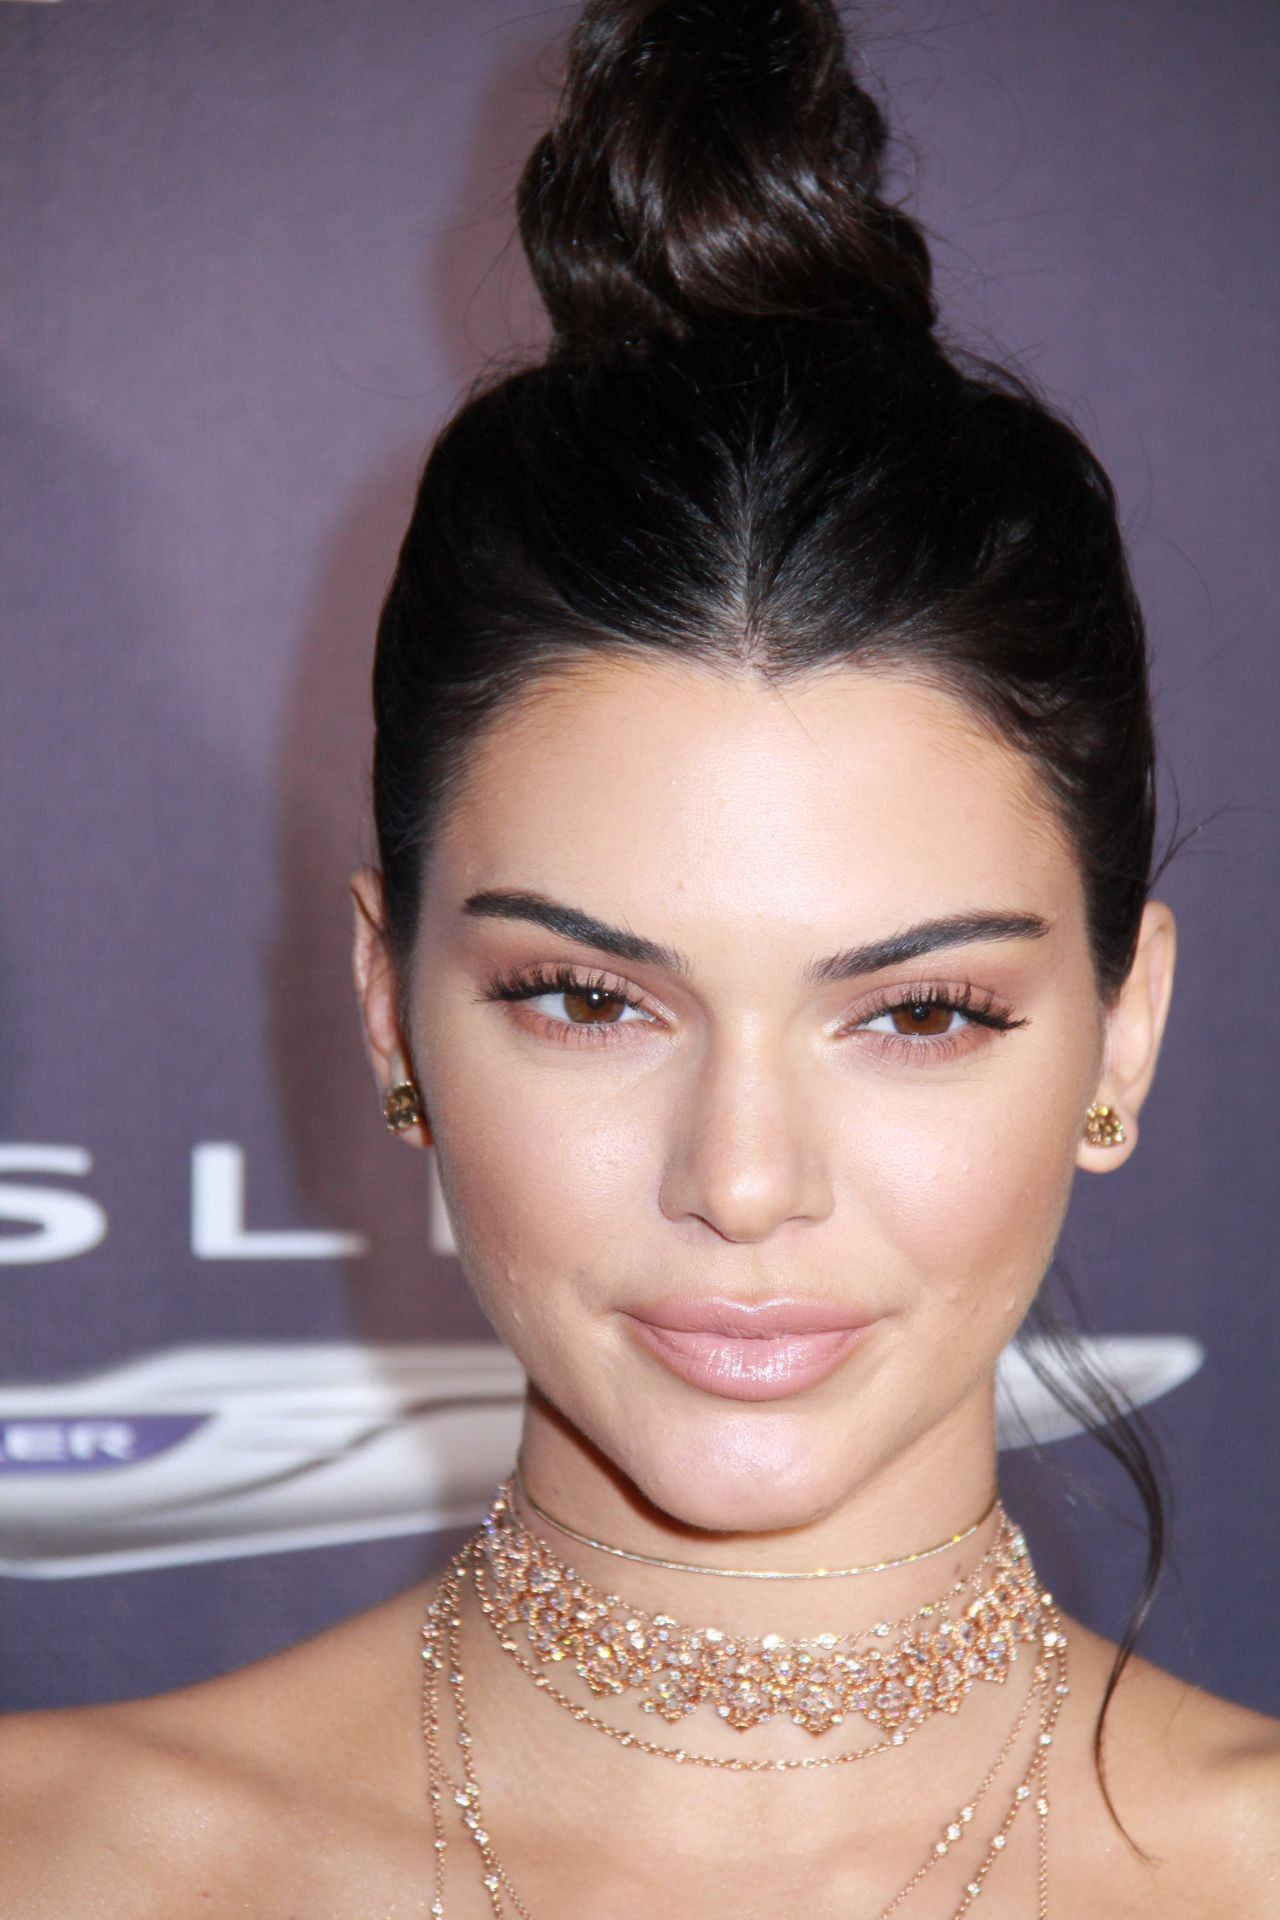 Kendall Jenner Universal Nbc Focus Features E